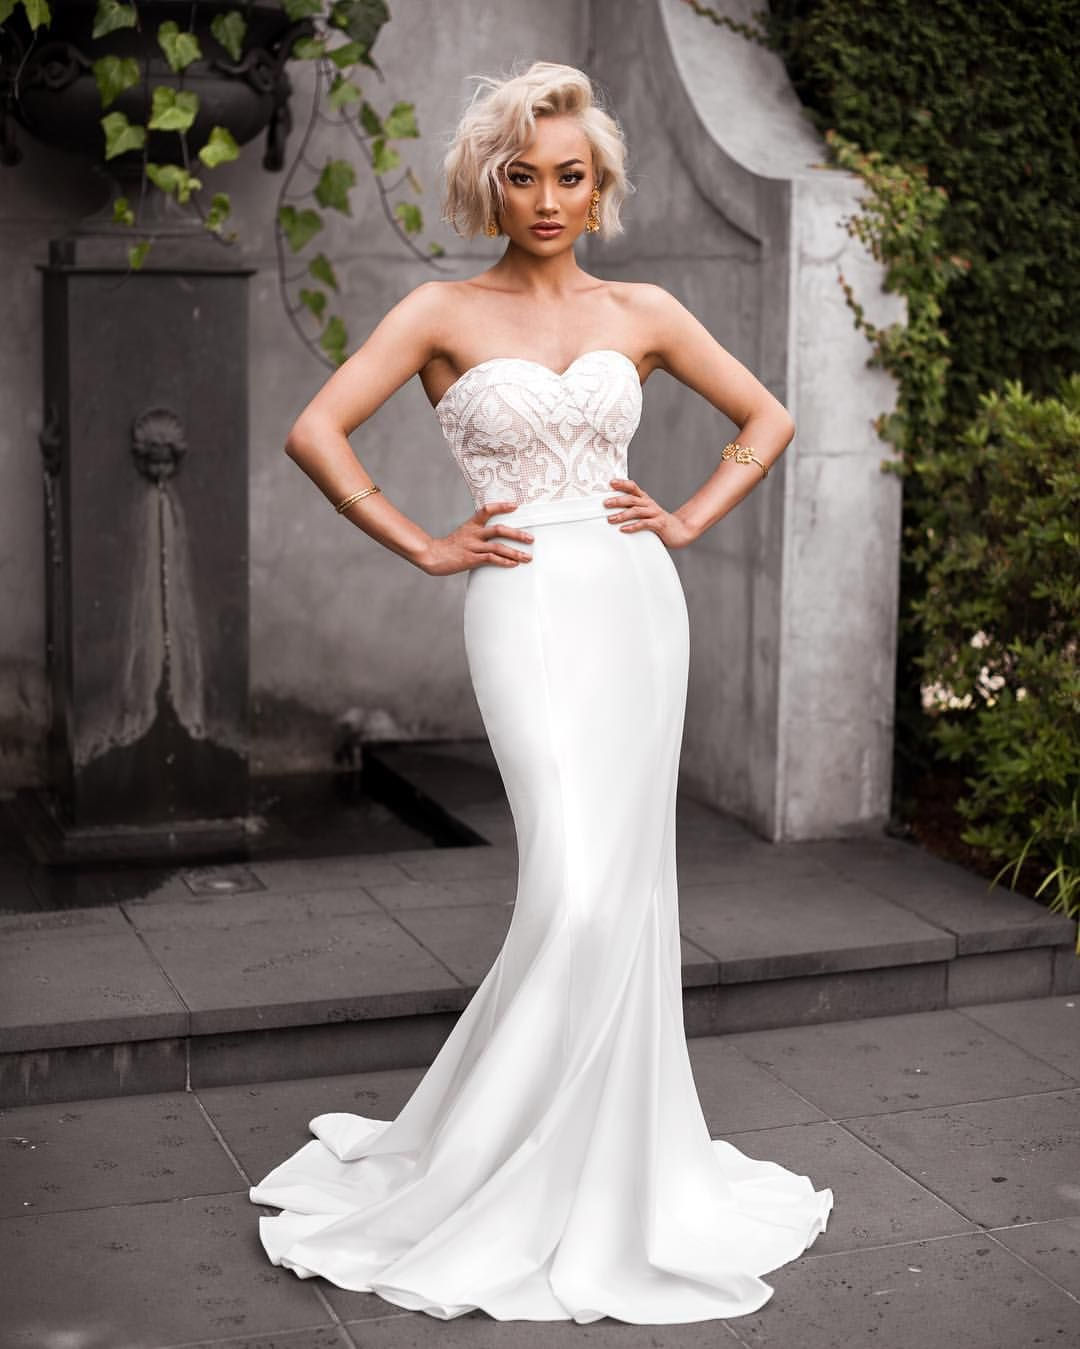 Big girl wedding dresses  Pin by Bernd on Micah  Pinterest  Micah gianneli Fashion  and